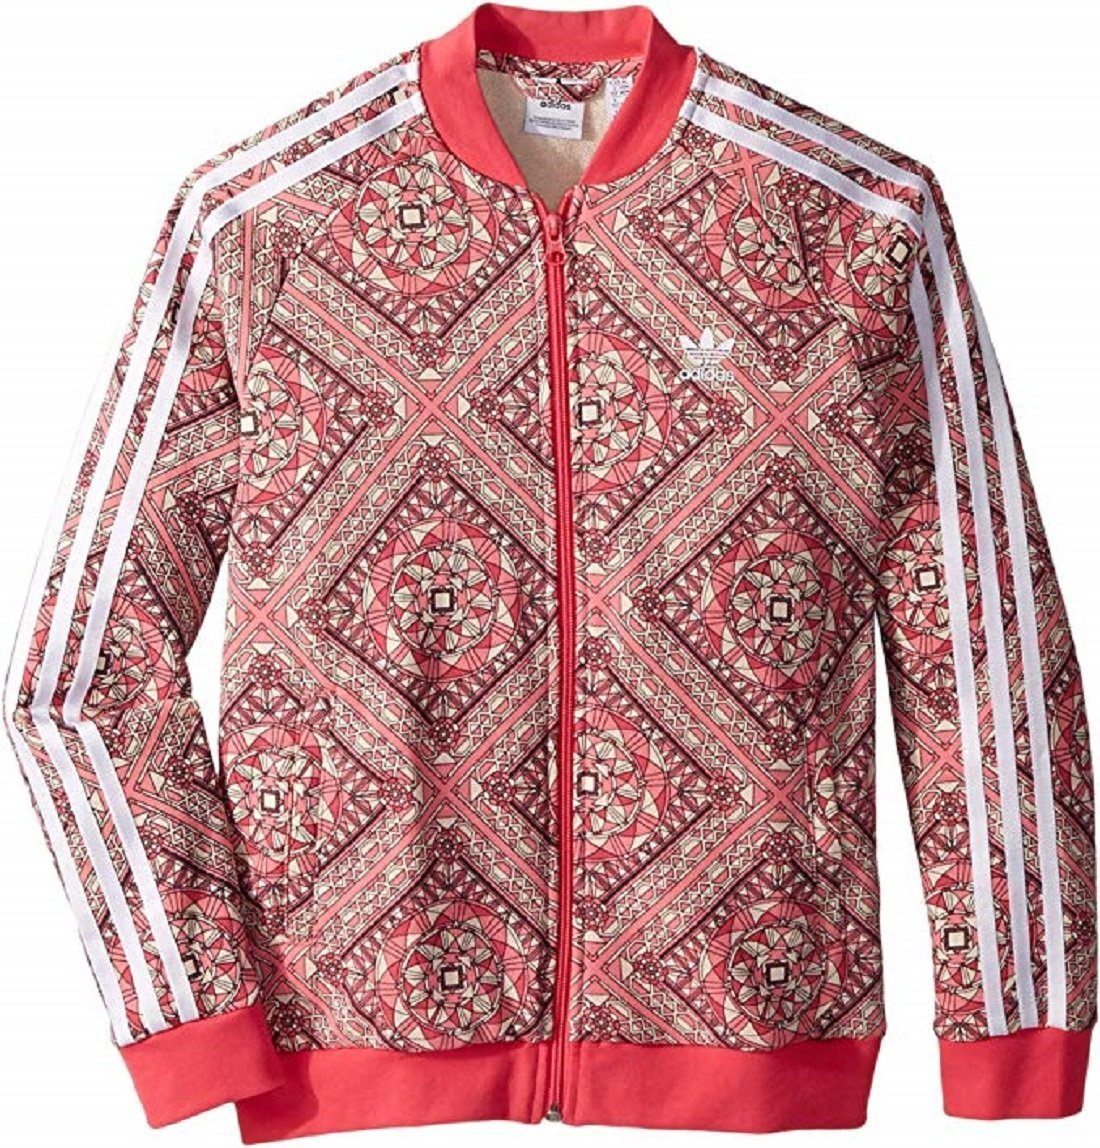 adidas Originals Kids Girl's Superstar Stained Glass Track Top (L) by adidas Originals